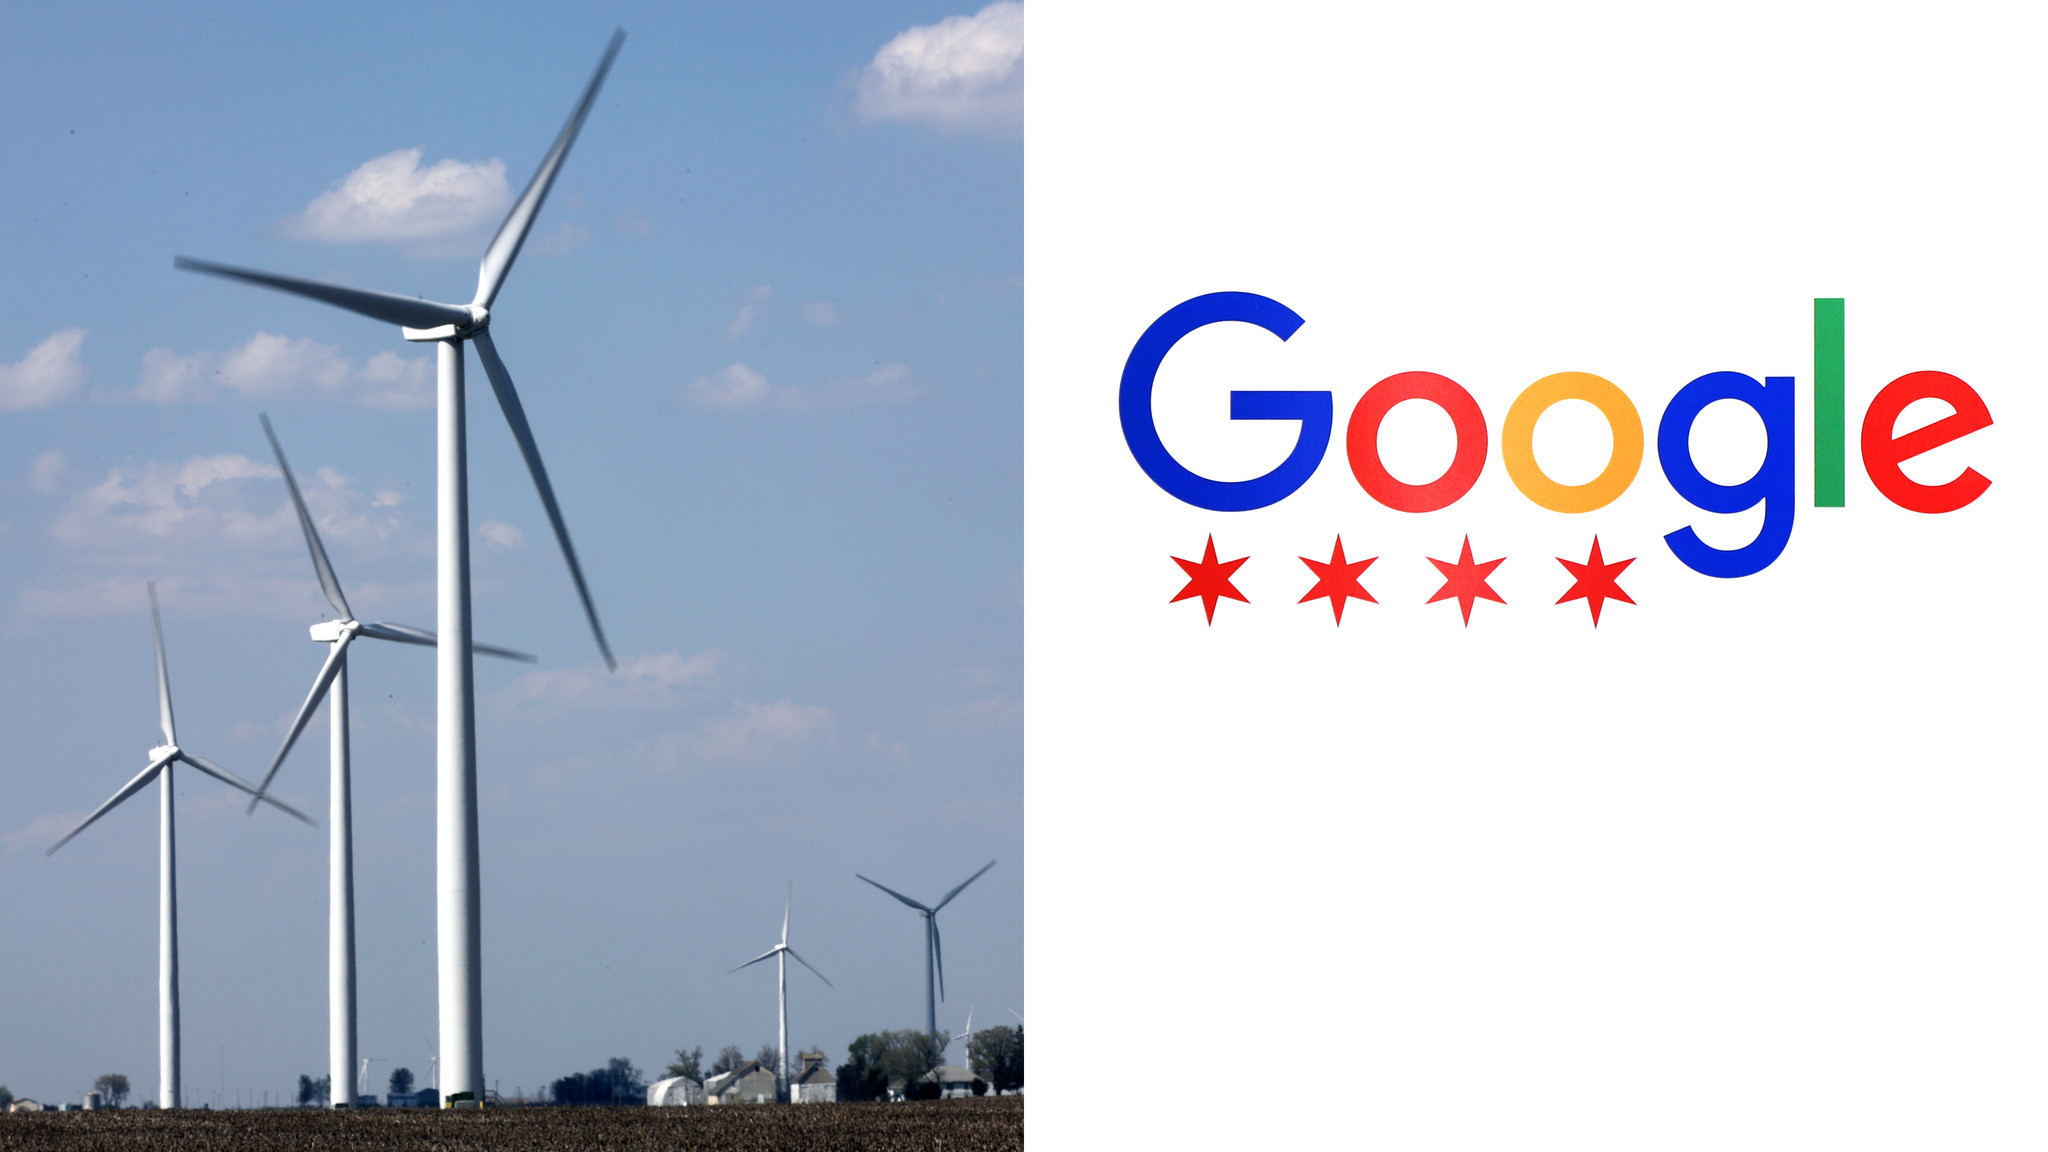 Chicago energy firm Invenergy to provide wind power to Google